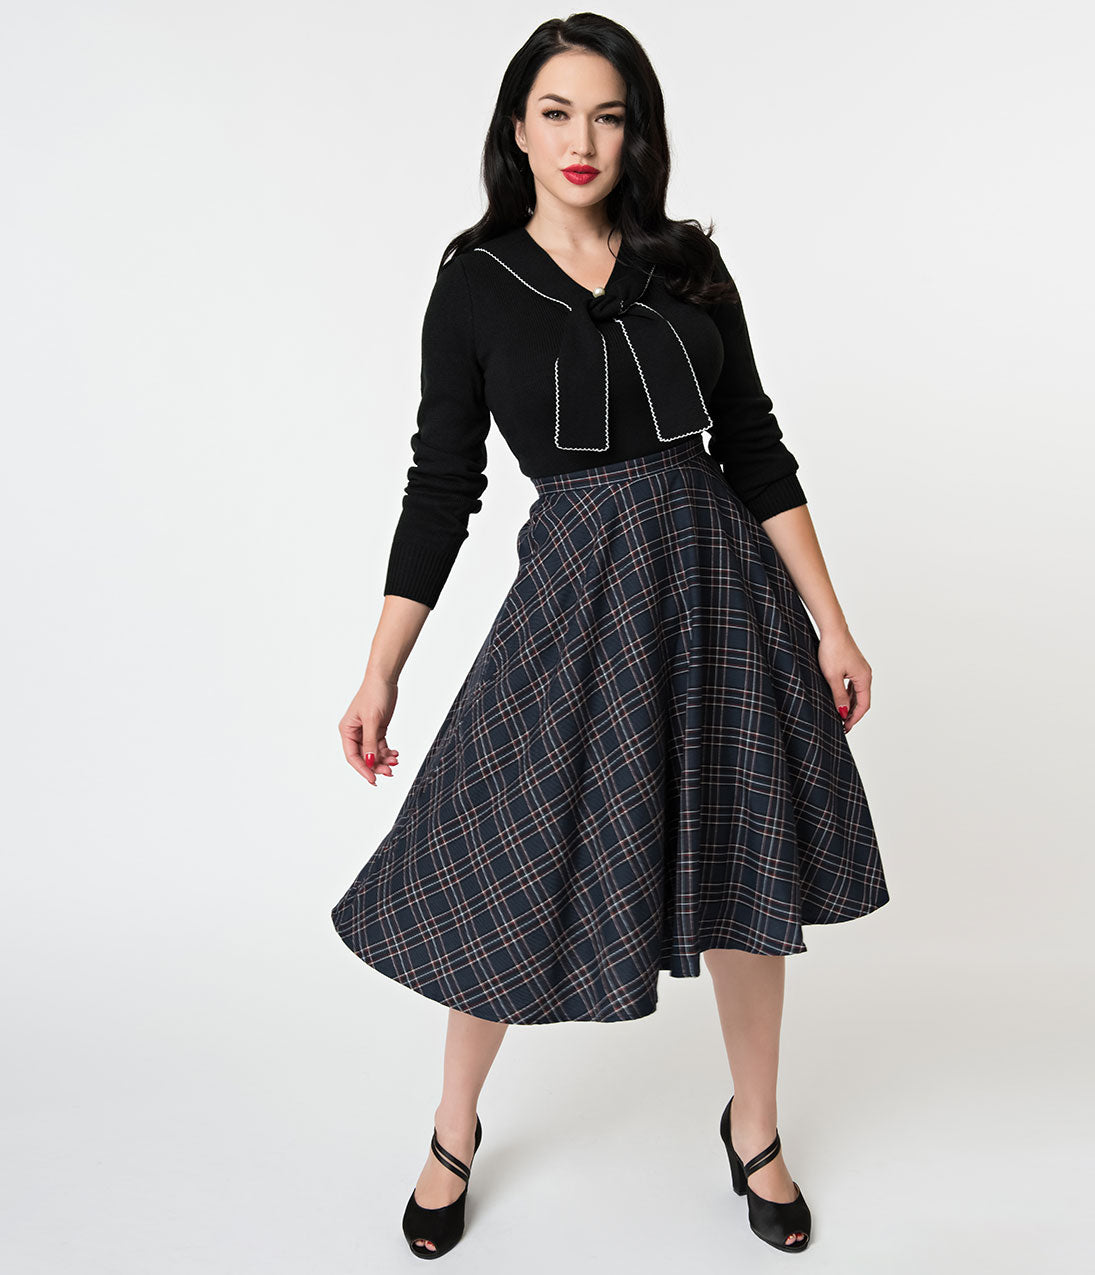 1950s Swing Skirt, Poodle Skirt, Pencil Skirts Hell Bunny 1950S Style Navy Tartan High Waist Peebles Swing Skirt $62.00 AT vintagedancer.com